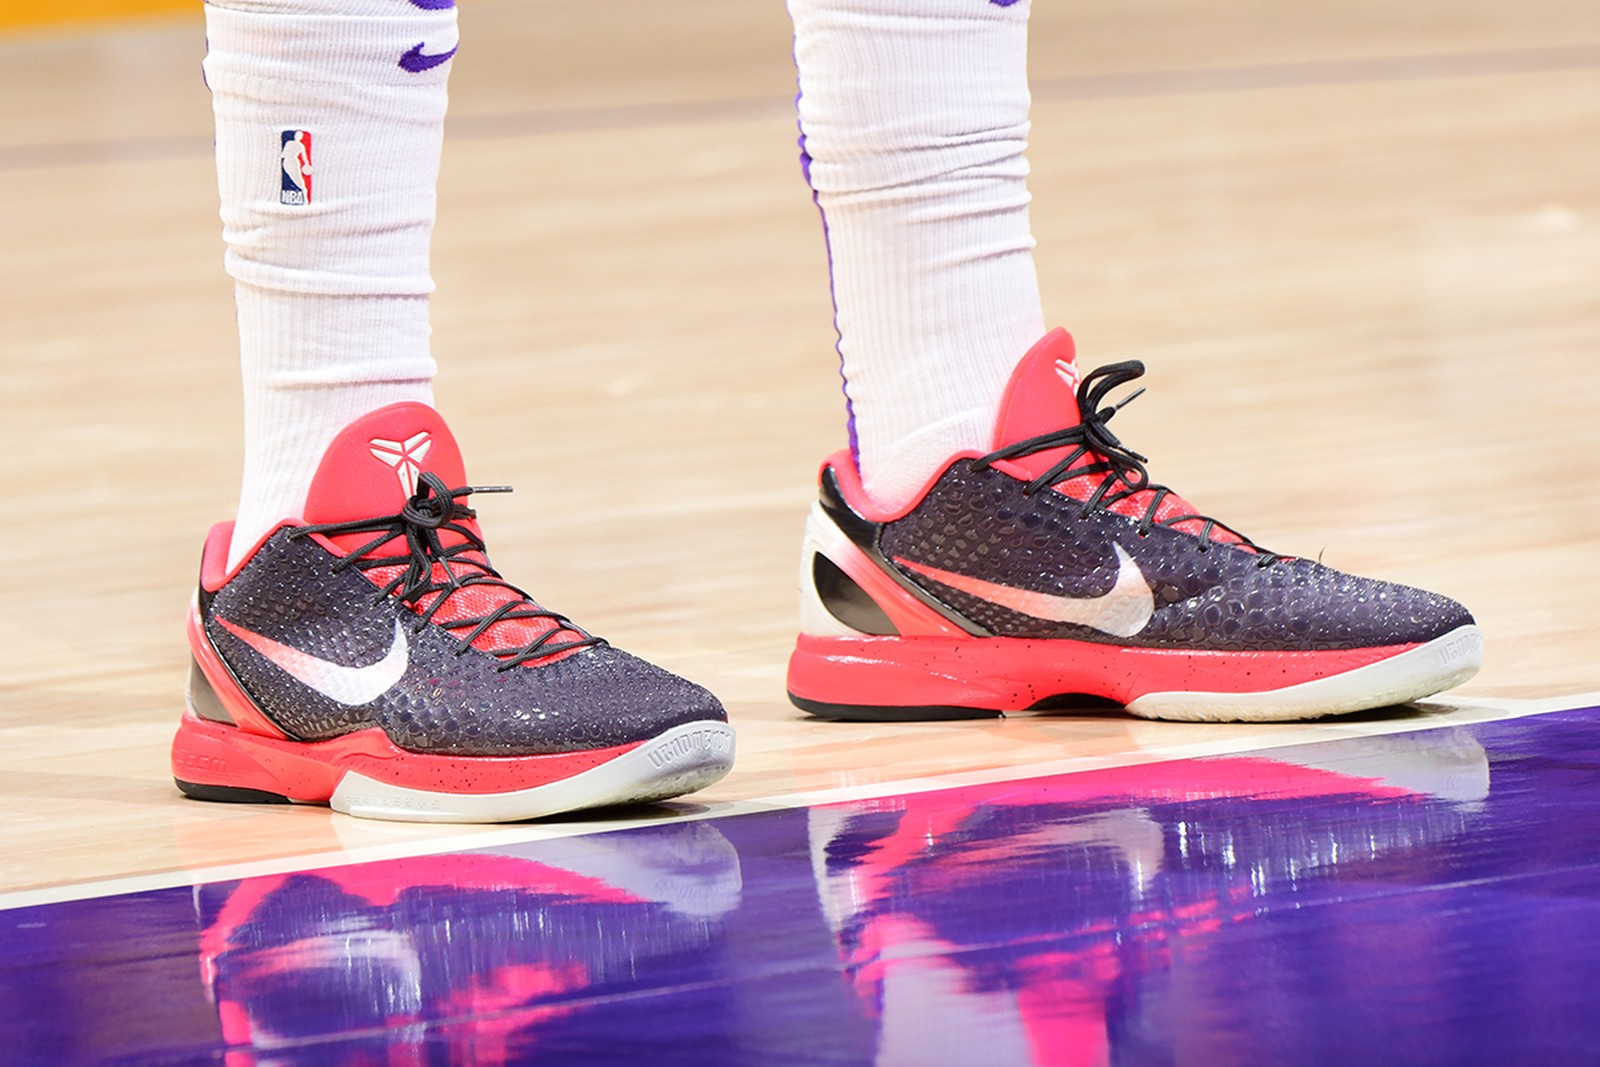 What Do You Need to Know Before Buying Basketball Shoes